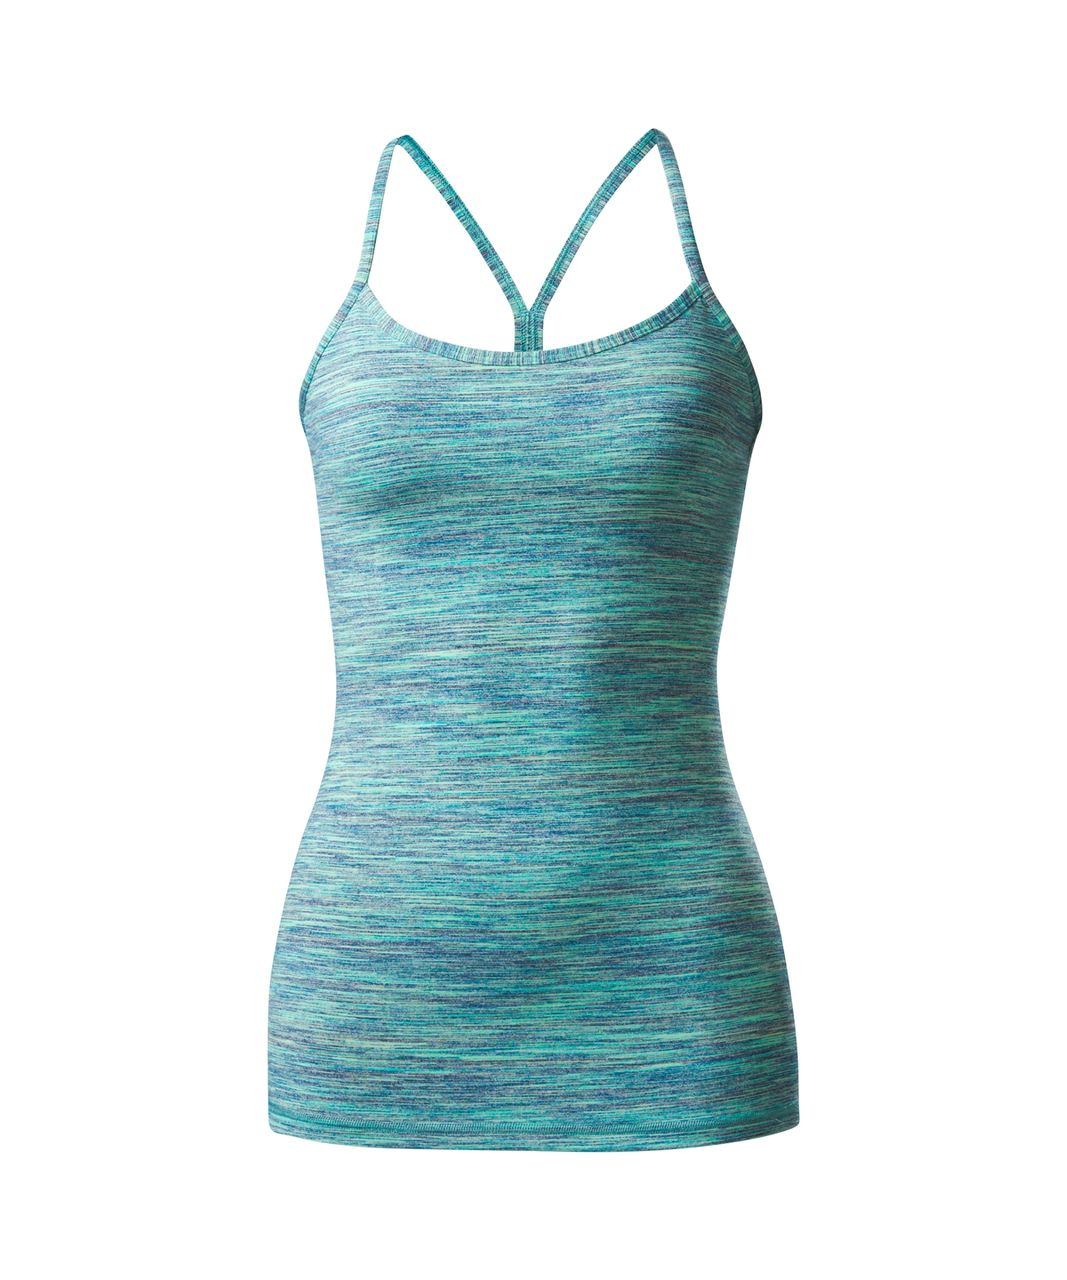 Lululemon Power Y Tank *Luon - Space Dye Camo Alberta Lake Fresh Teal